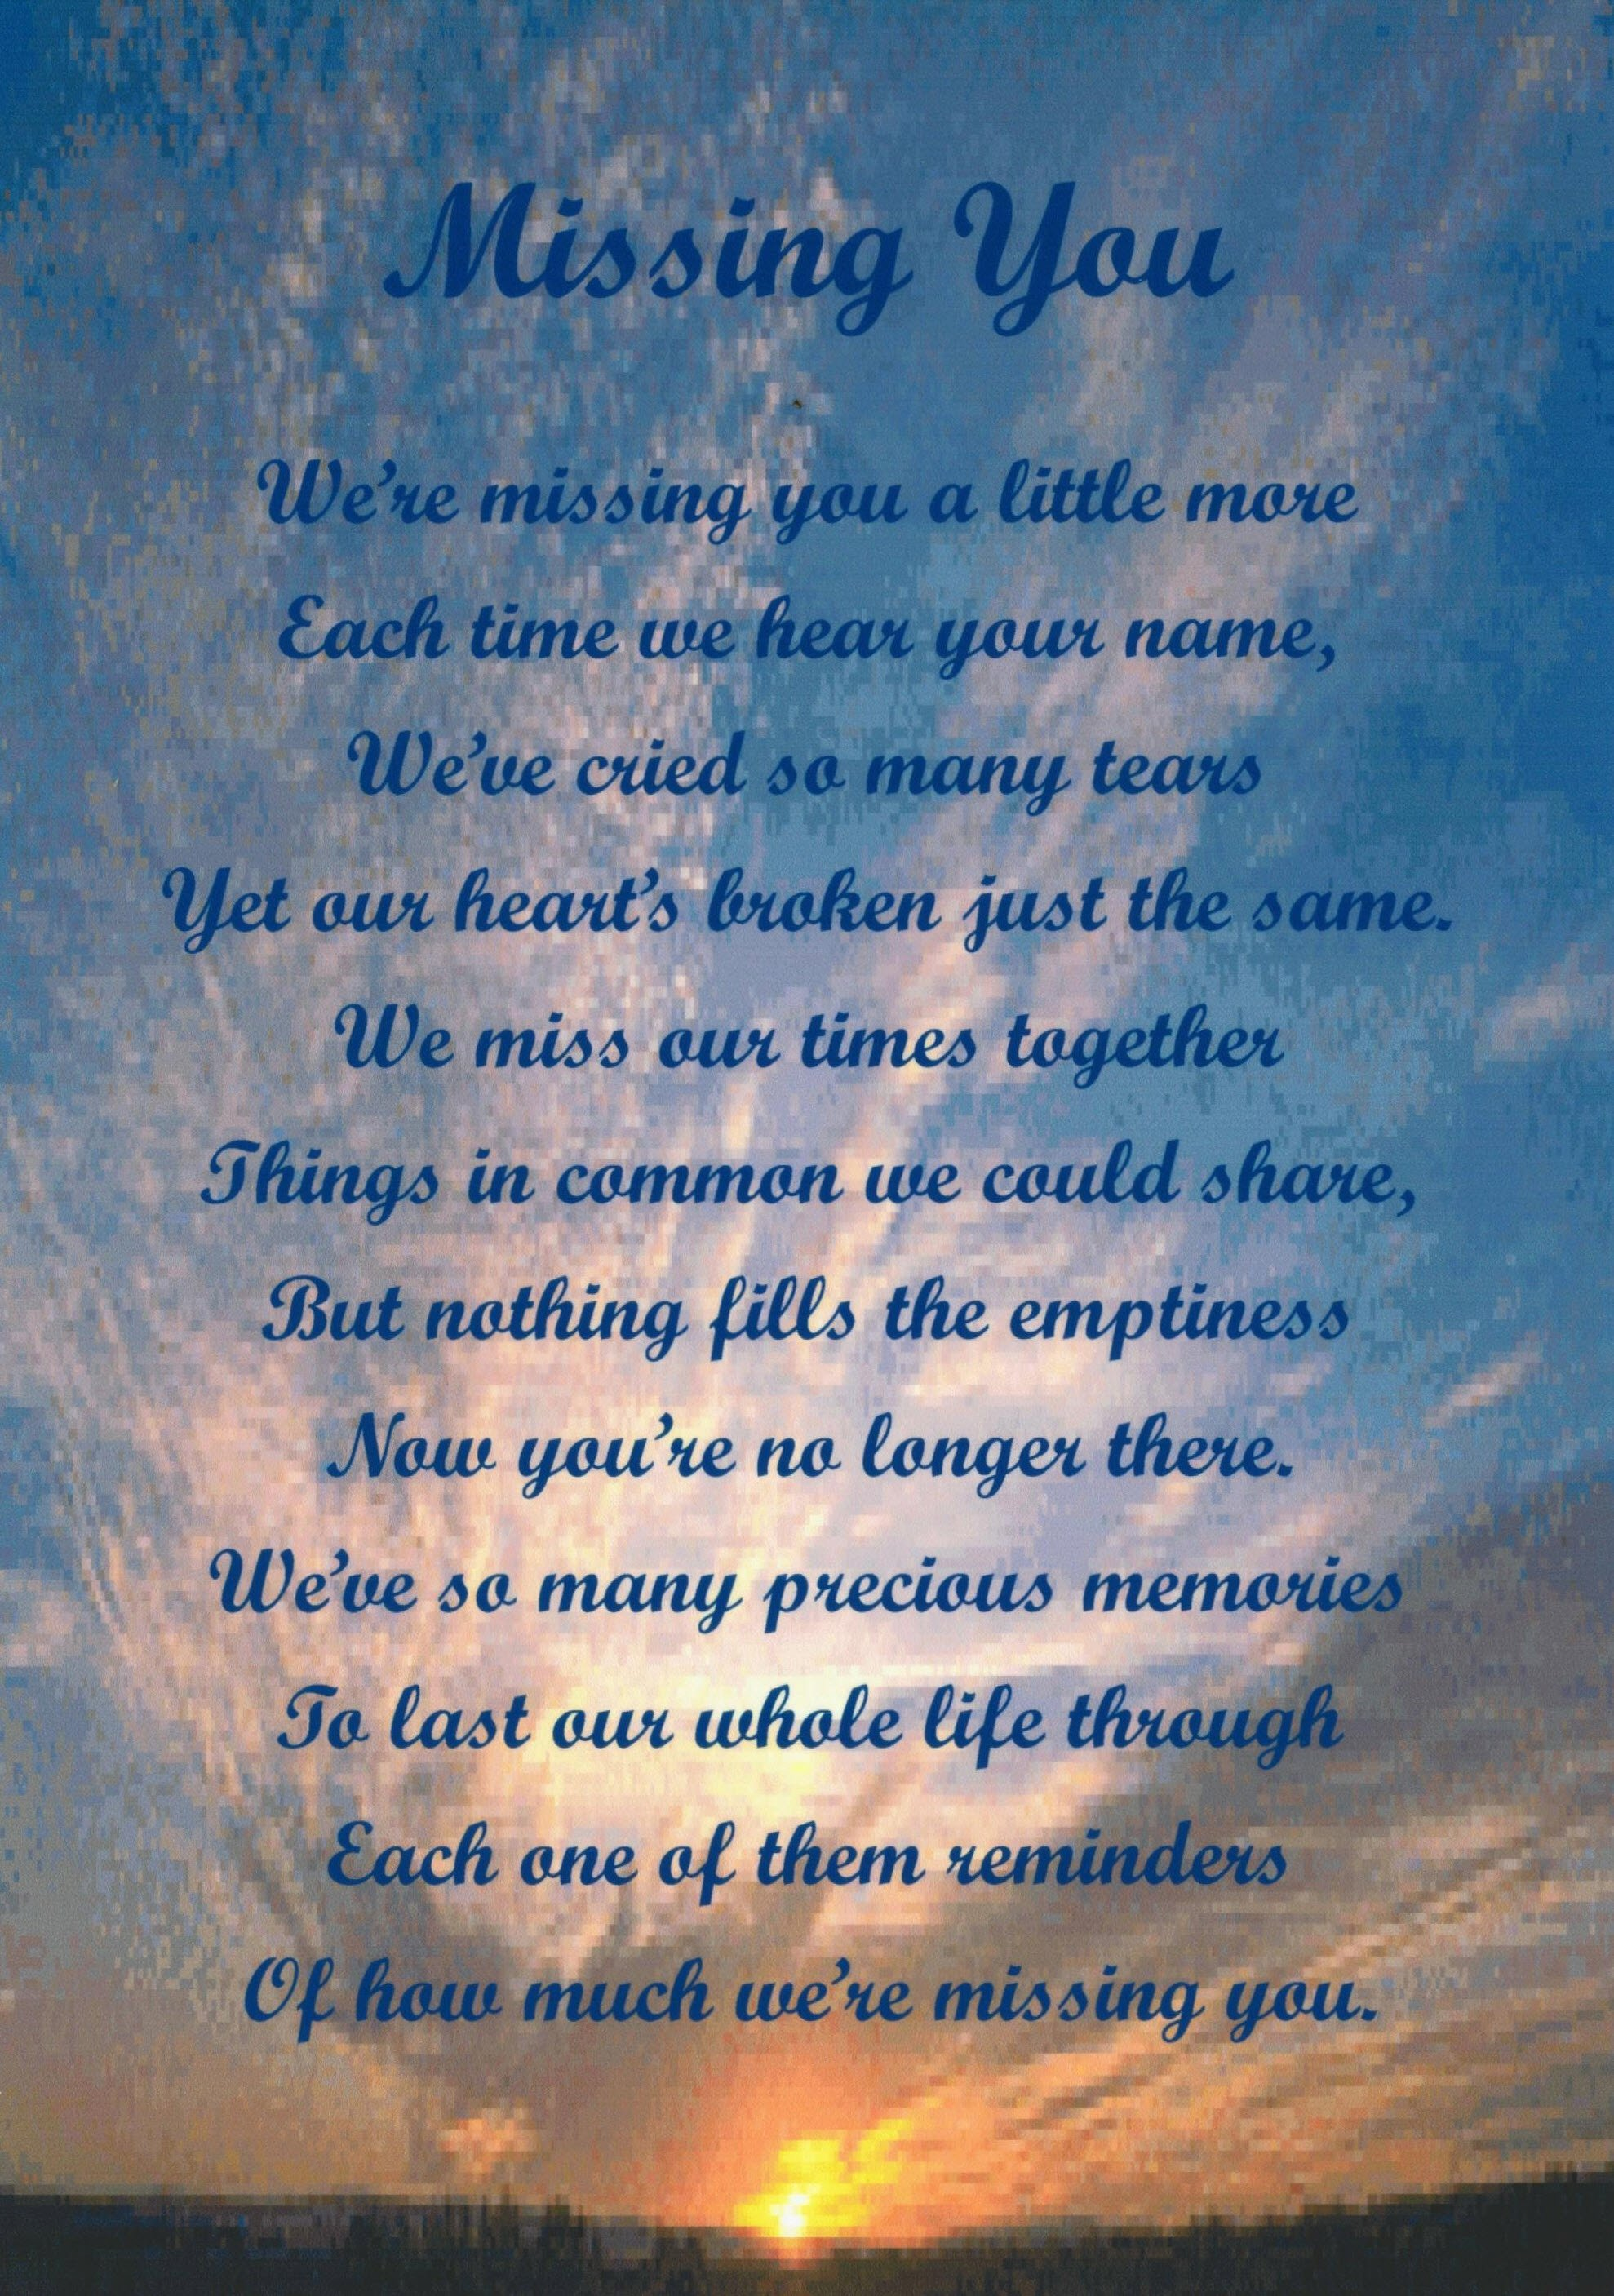 husband passed away quotes quotesgram